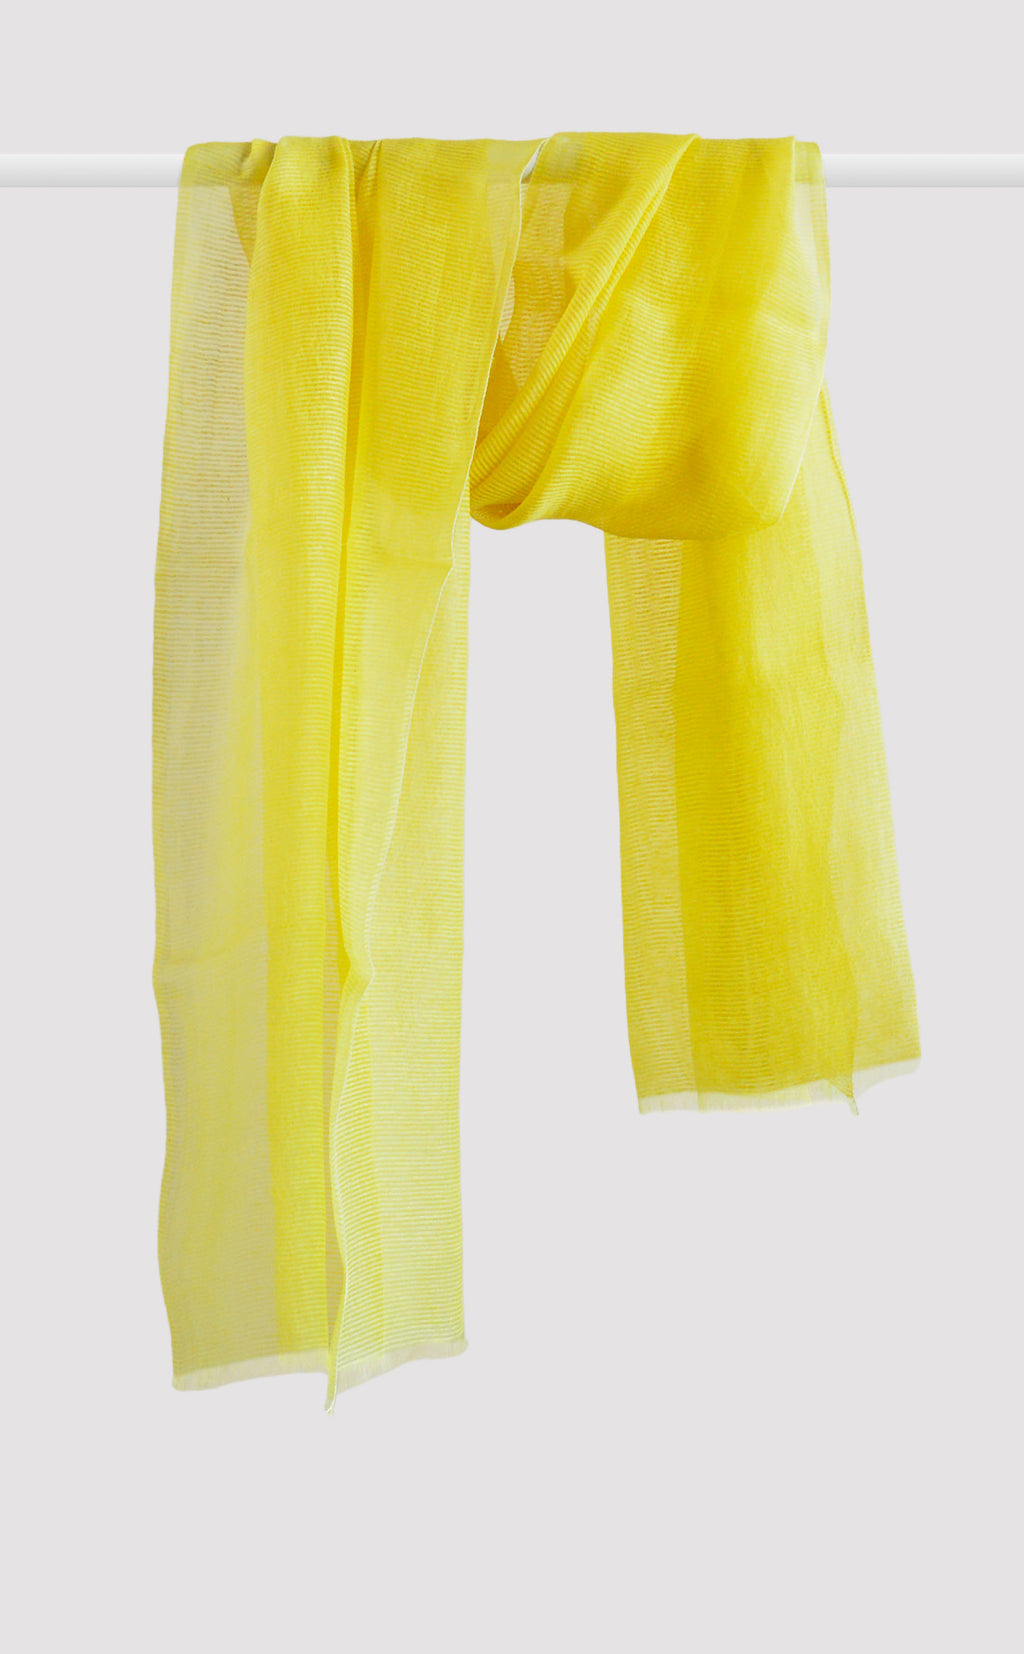 Lemon Yellow Organza Dupatta